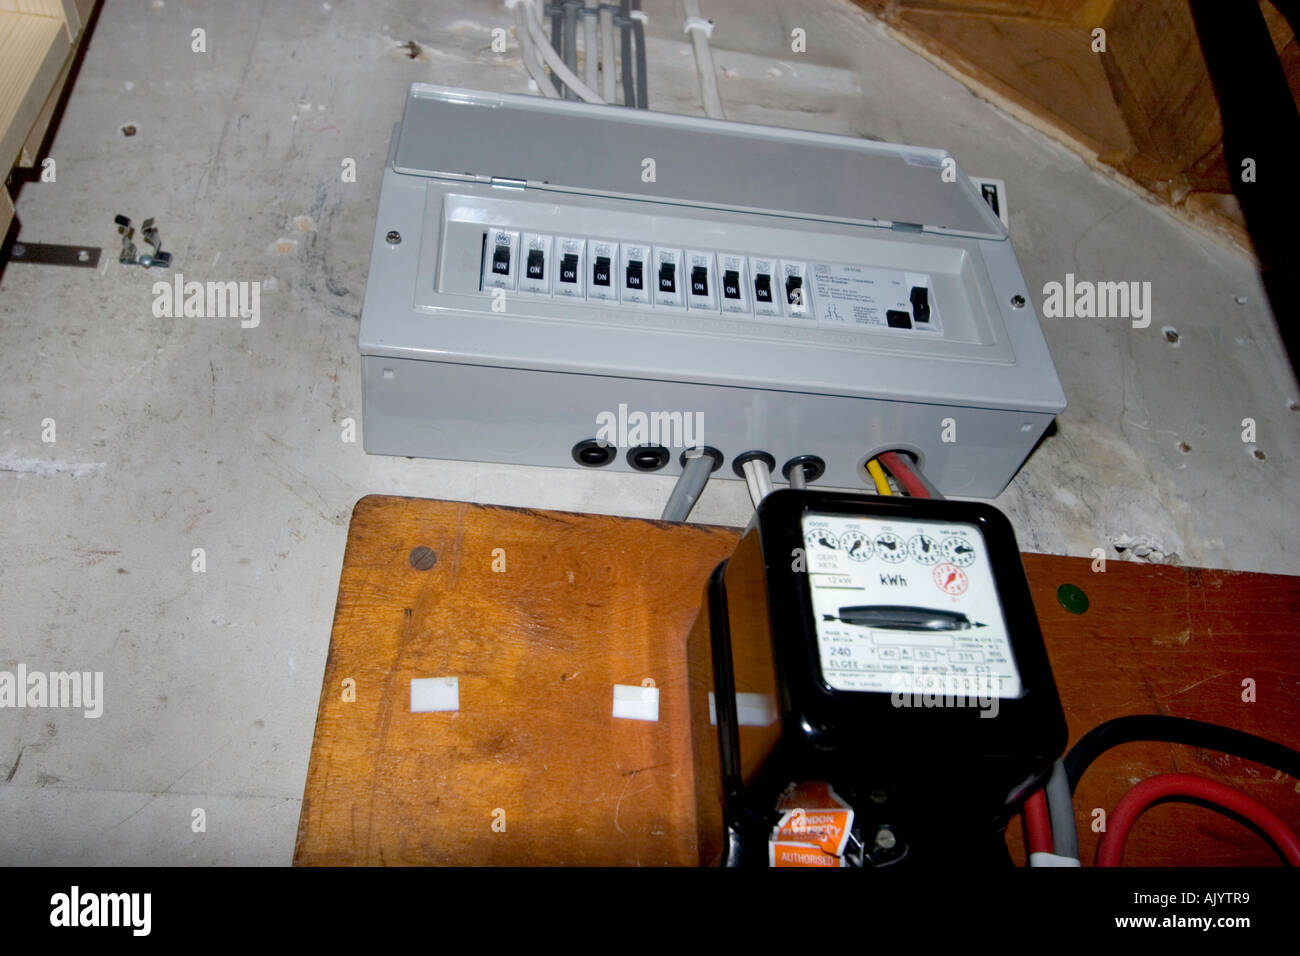 fusebox house stock photos & fusebox house stock images alamy home fuse box diagram uk electrical fuse box under stairs of house with standard electricity meter stock image